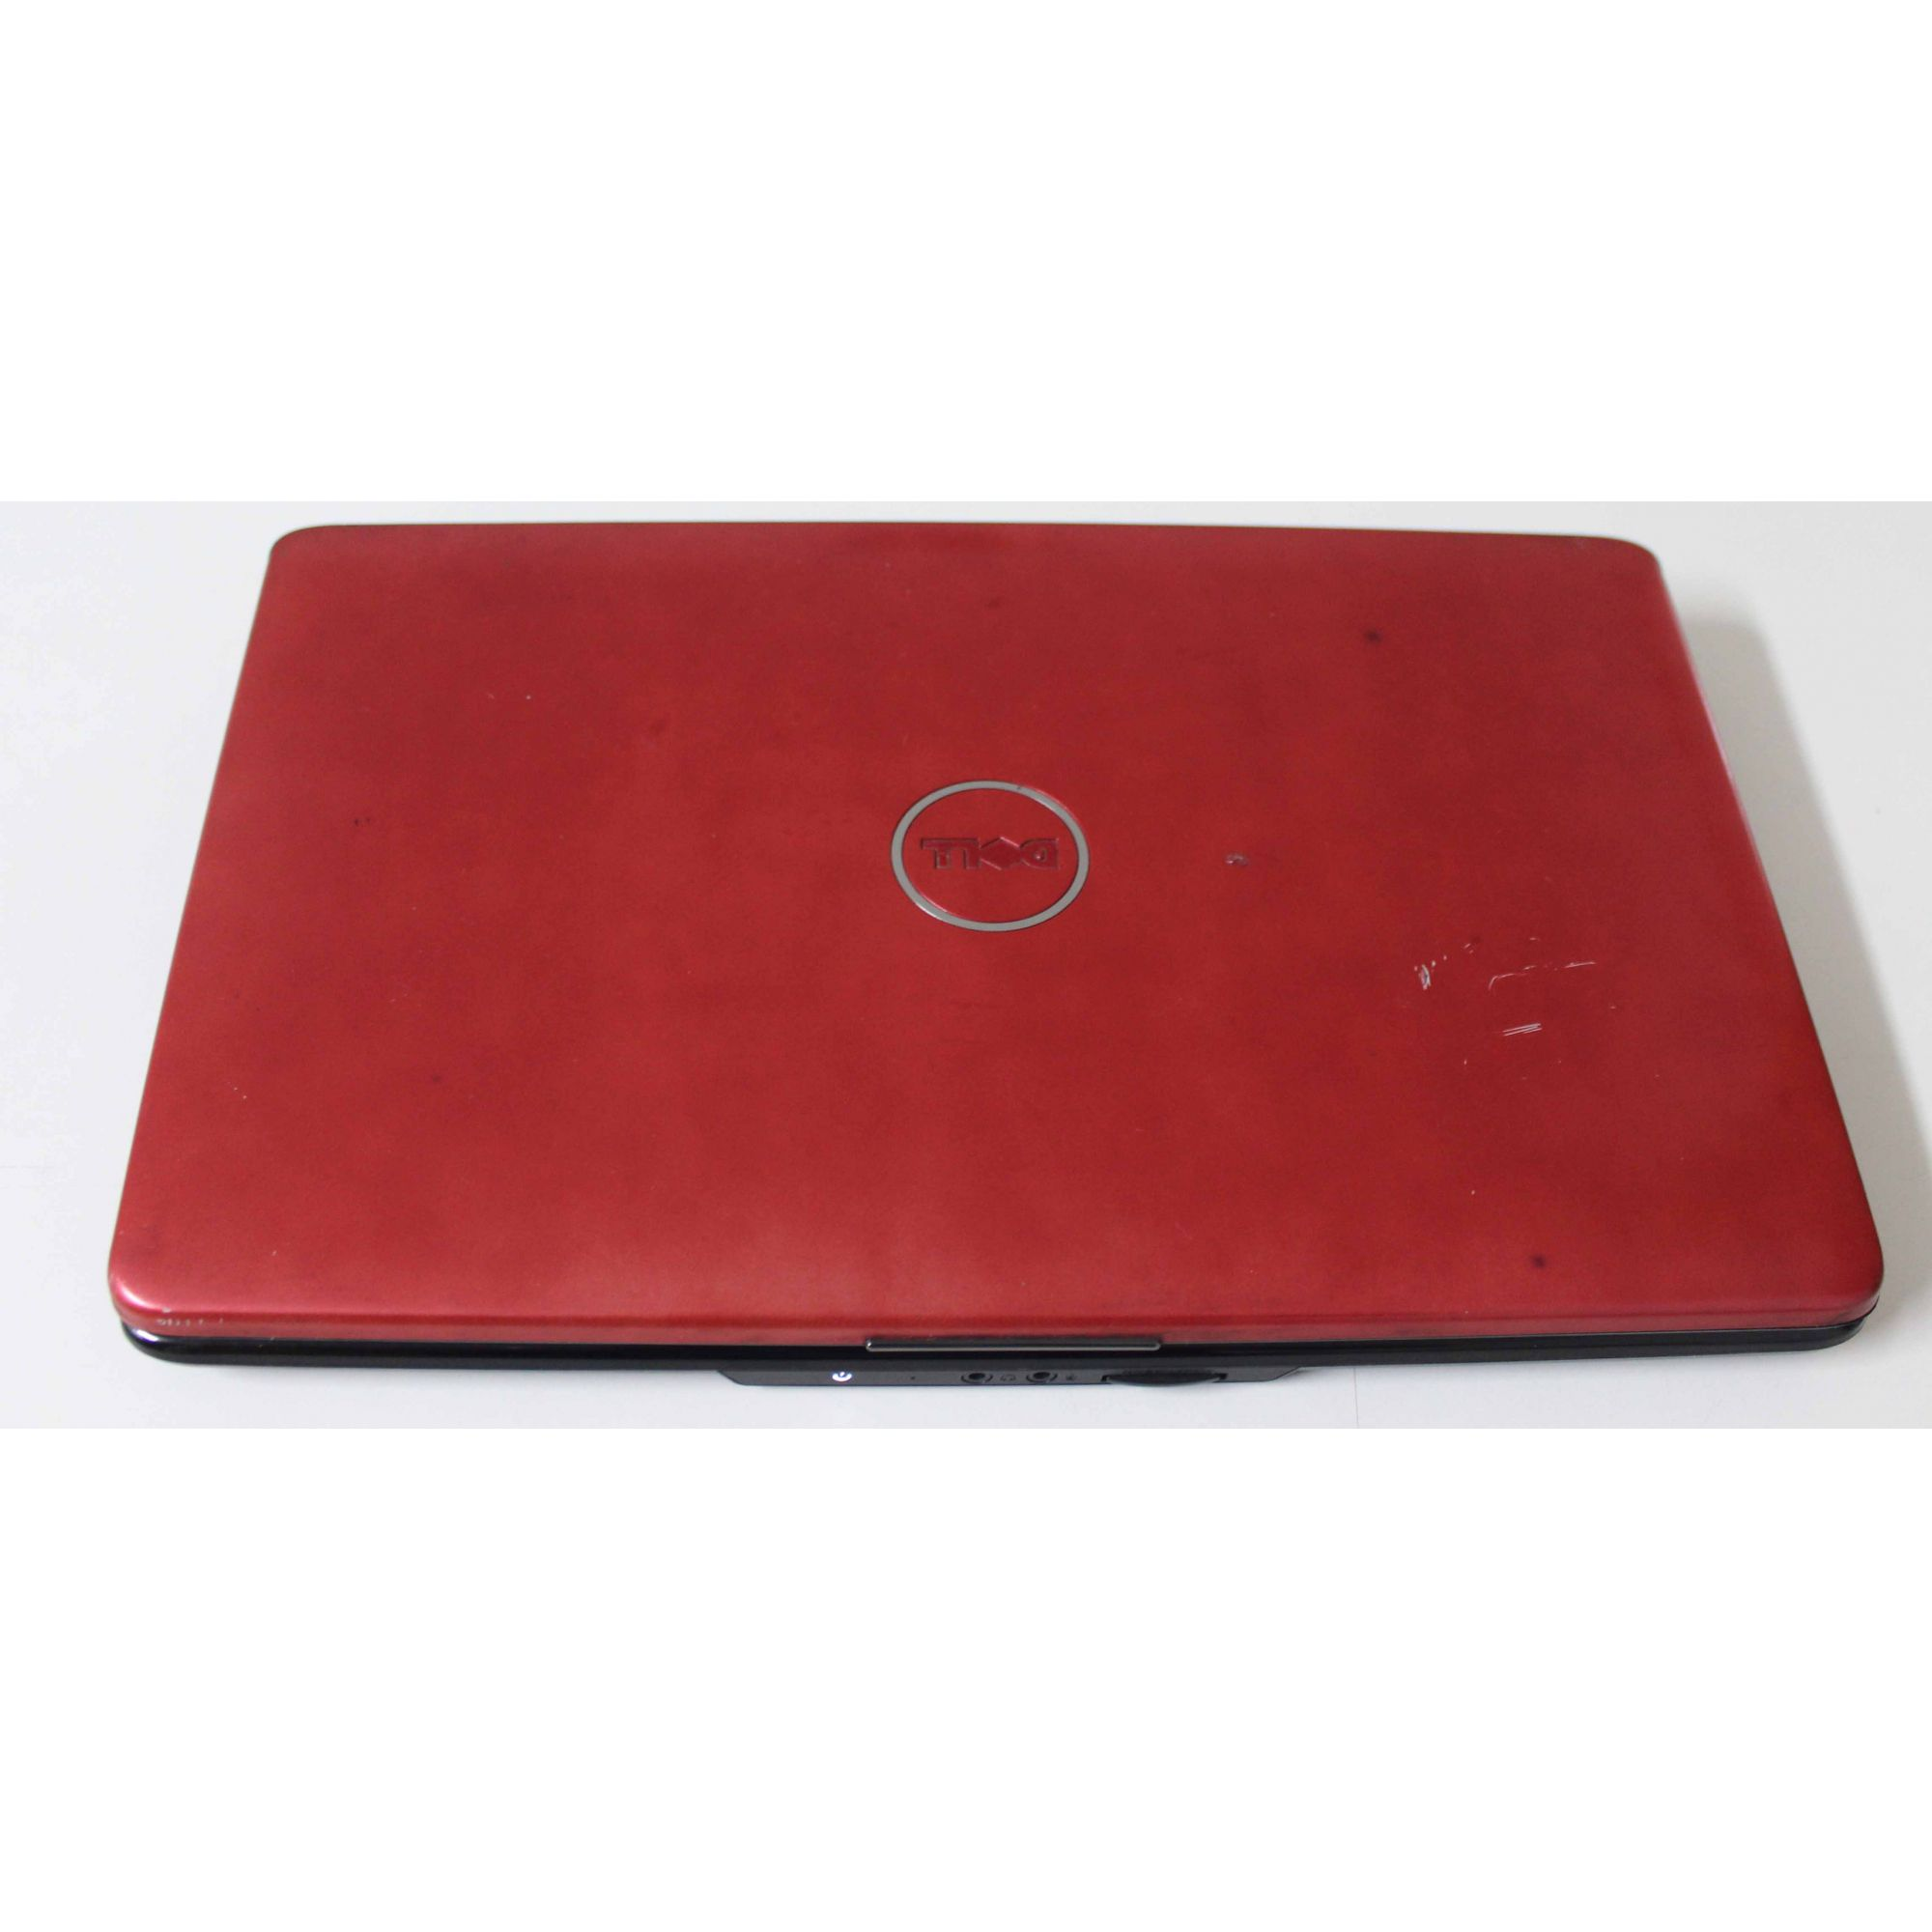 Notebook Dell Inspiron 1545 Core 2 duo 2.1GHz 3GB HD-320GB